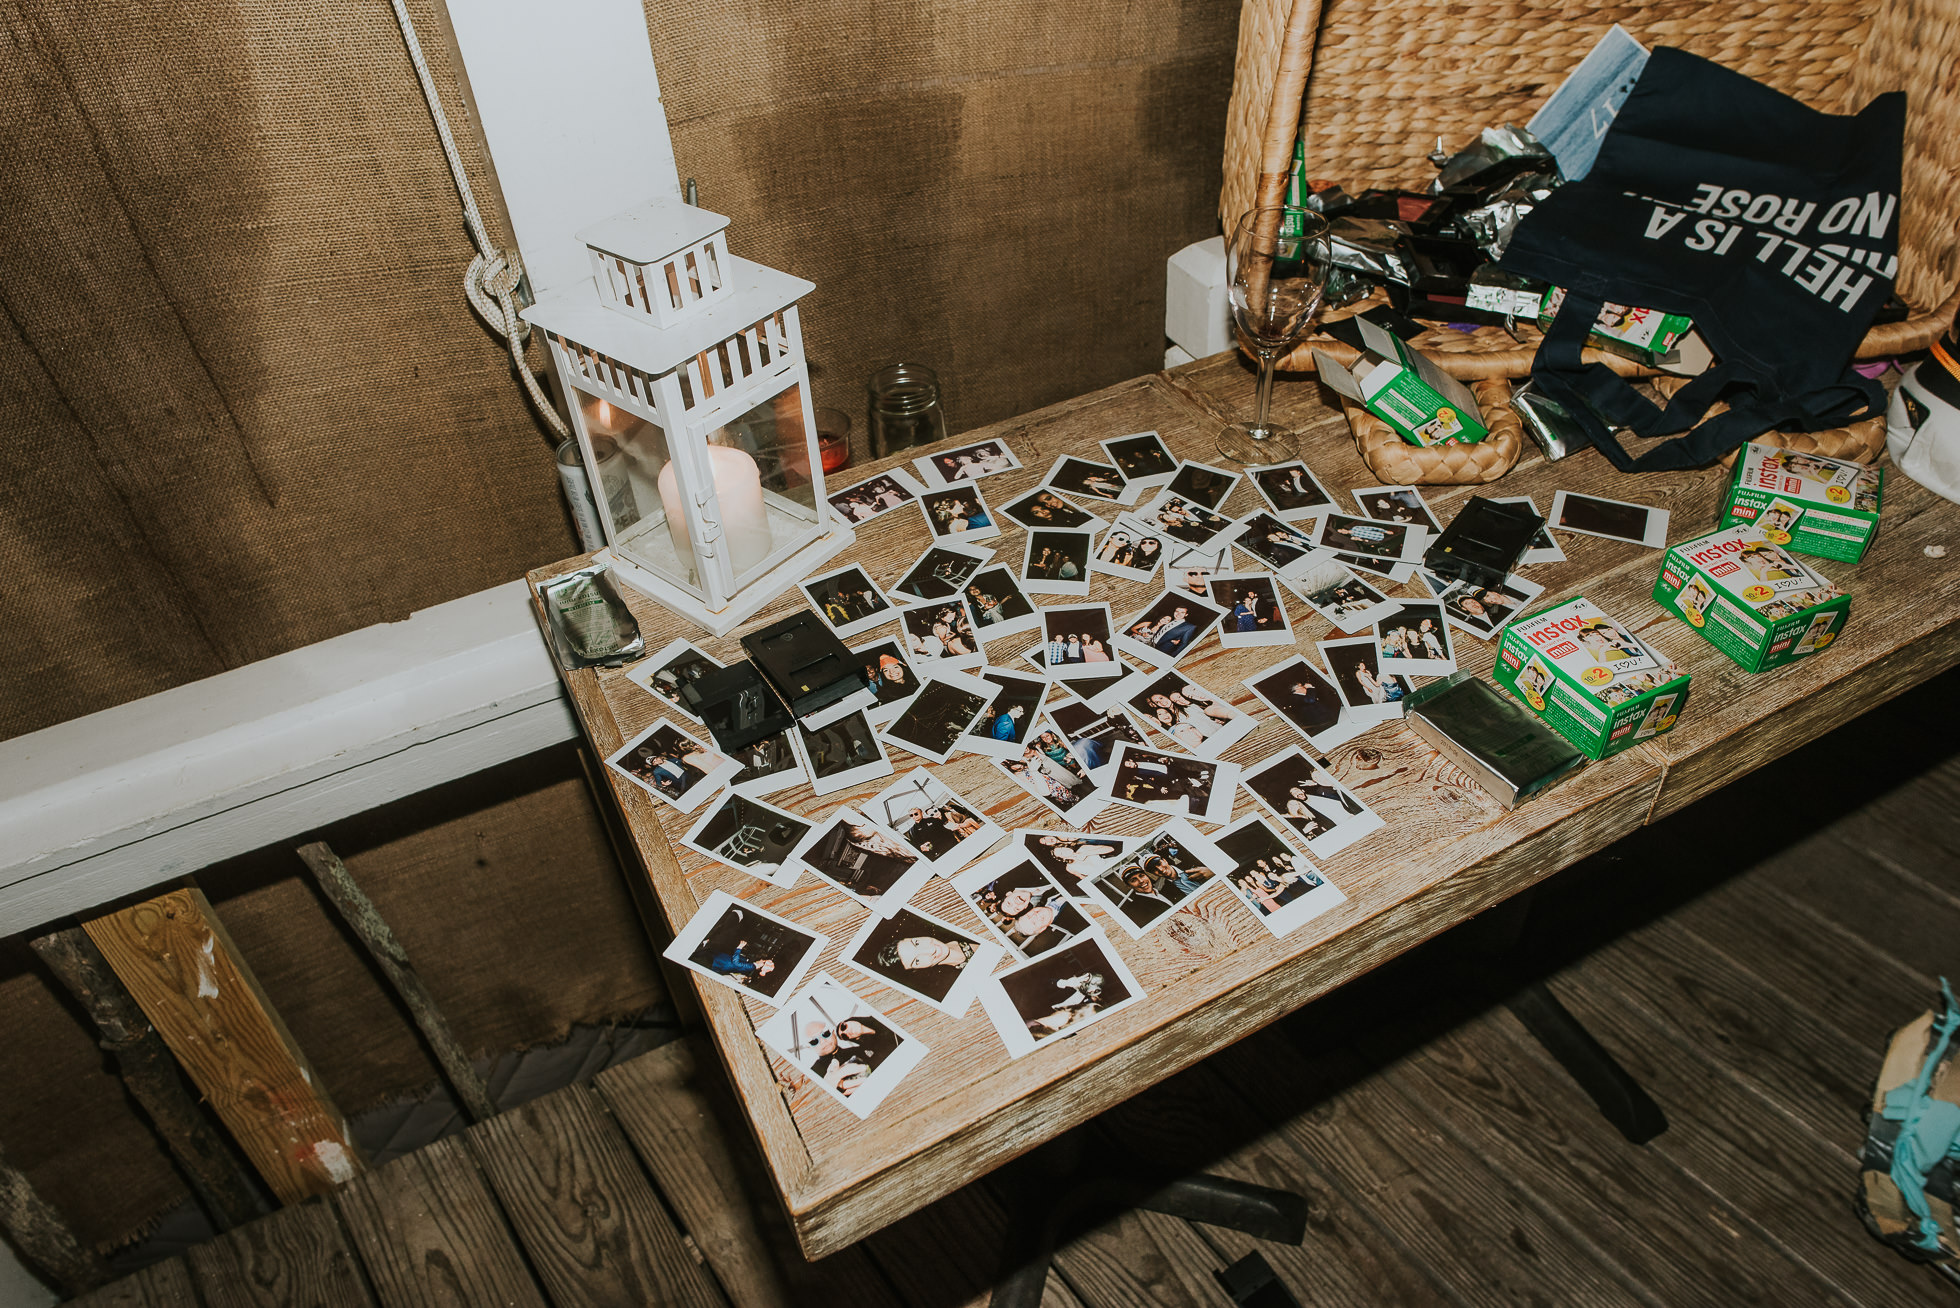 polaroid instant film at reception the surf lodge Montauk wedding photographed by Traverse the Tides